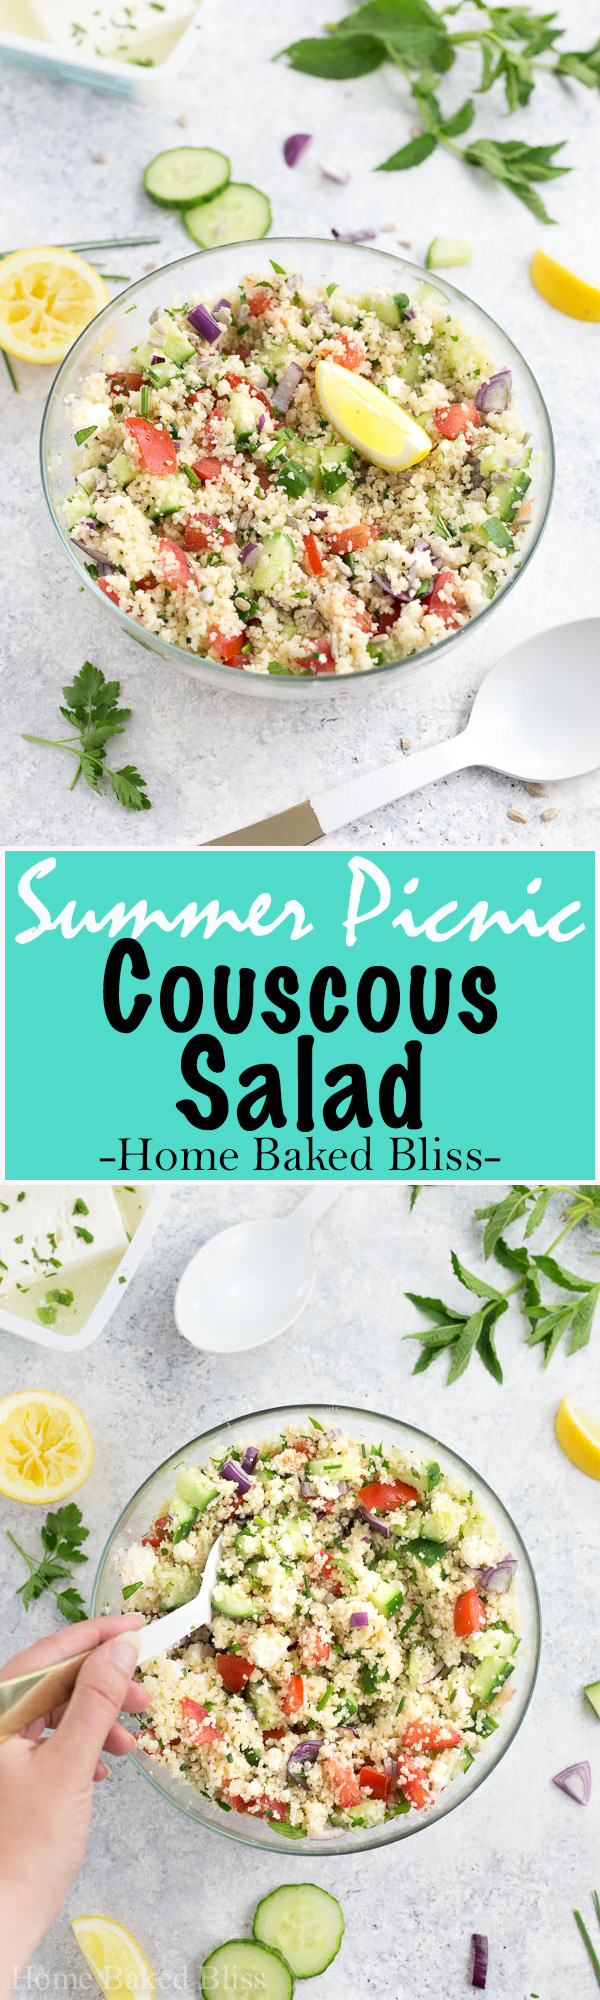 A colourful and flavourful summer inspired couscous salad with tomatoes, cucumbers, onions, and feta cheese. Seasoned with fresh herbs. The perfect recipe for a picnic!